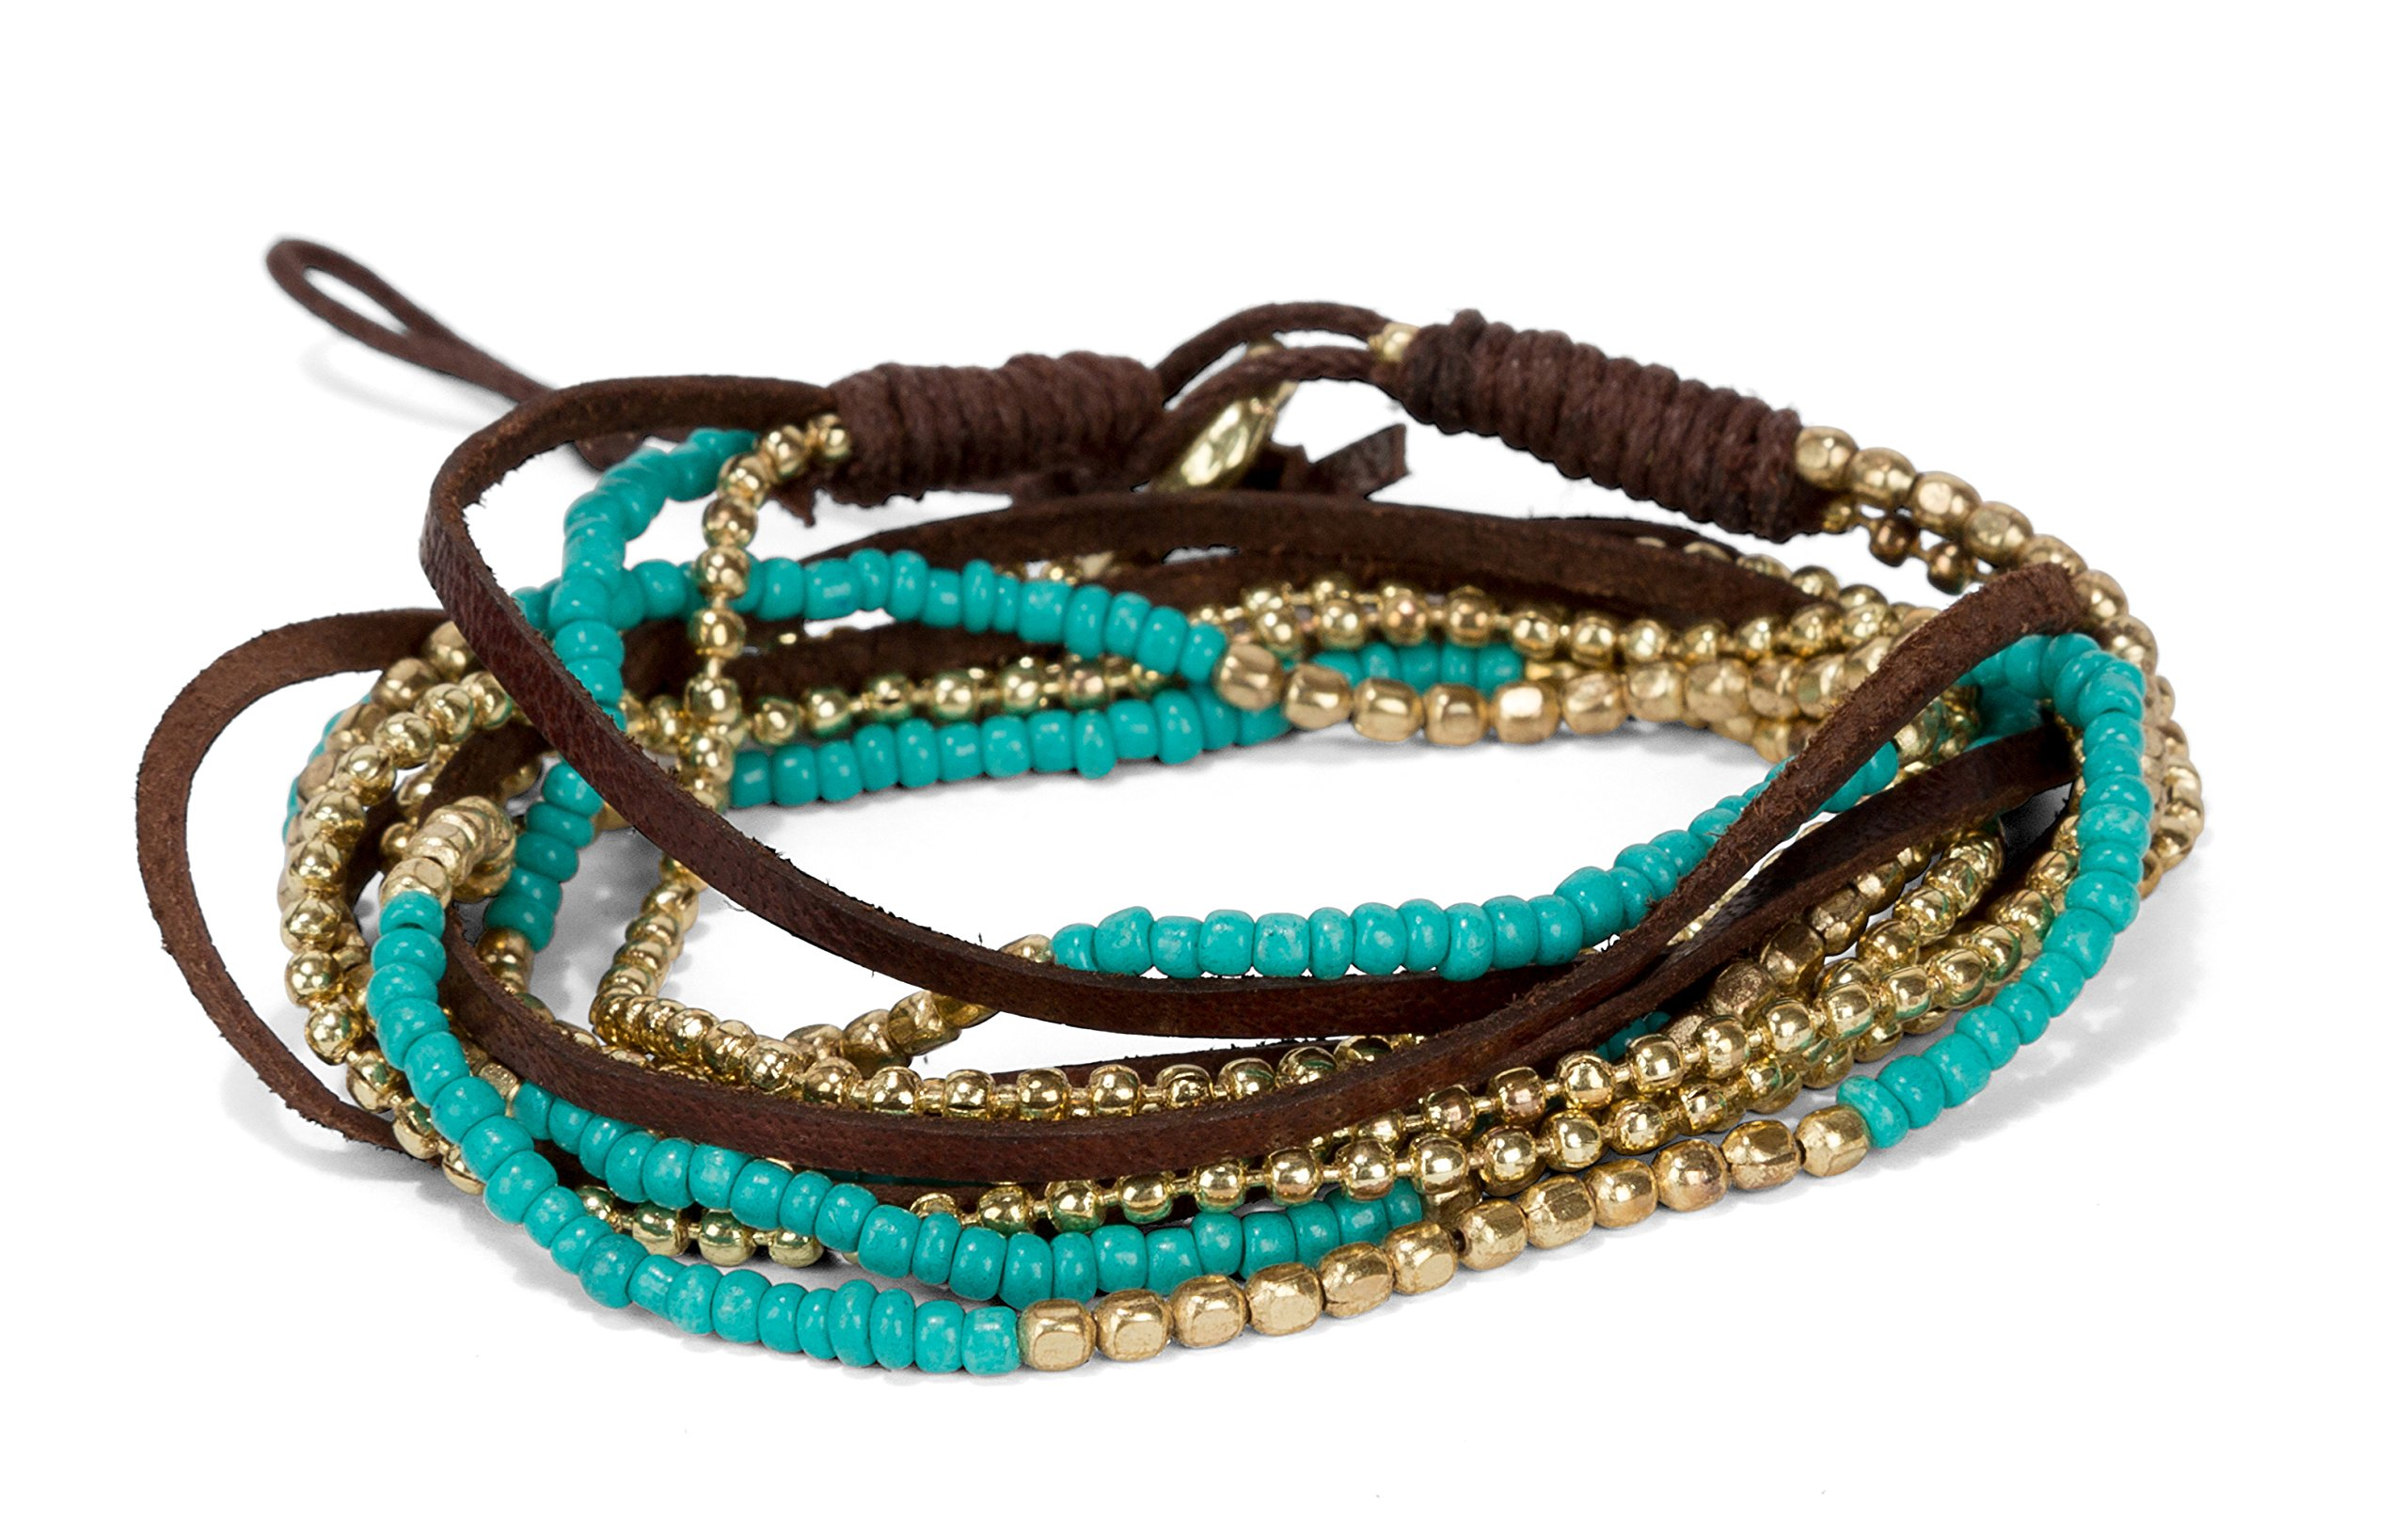 Handmade Boho 4 Wrap Multi Strand Bracelet Teal Gold for Women | SPUNKYsoul Collection by SPUNKYsoul